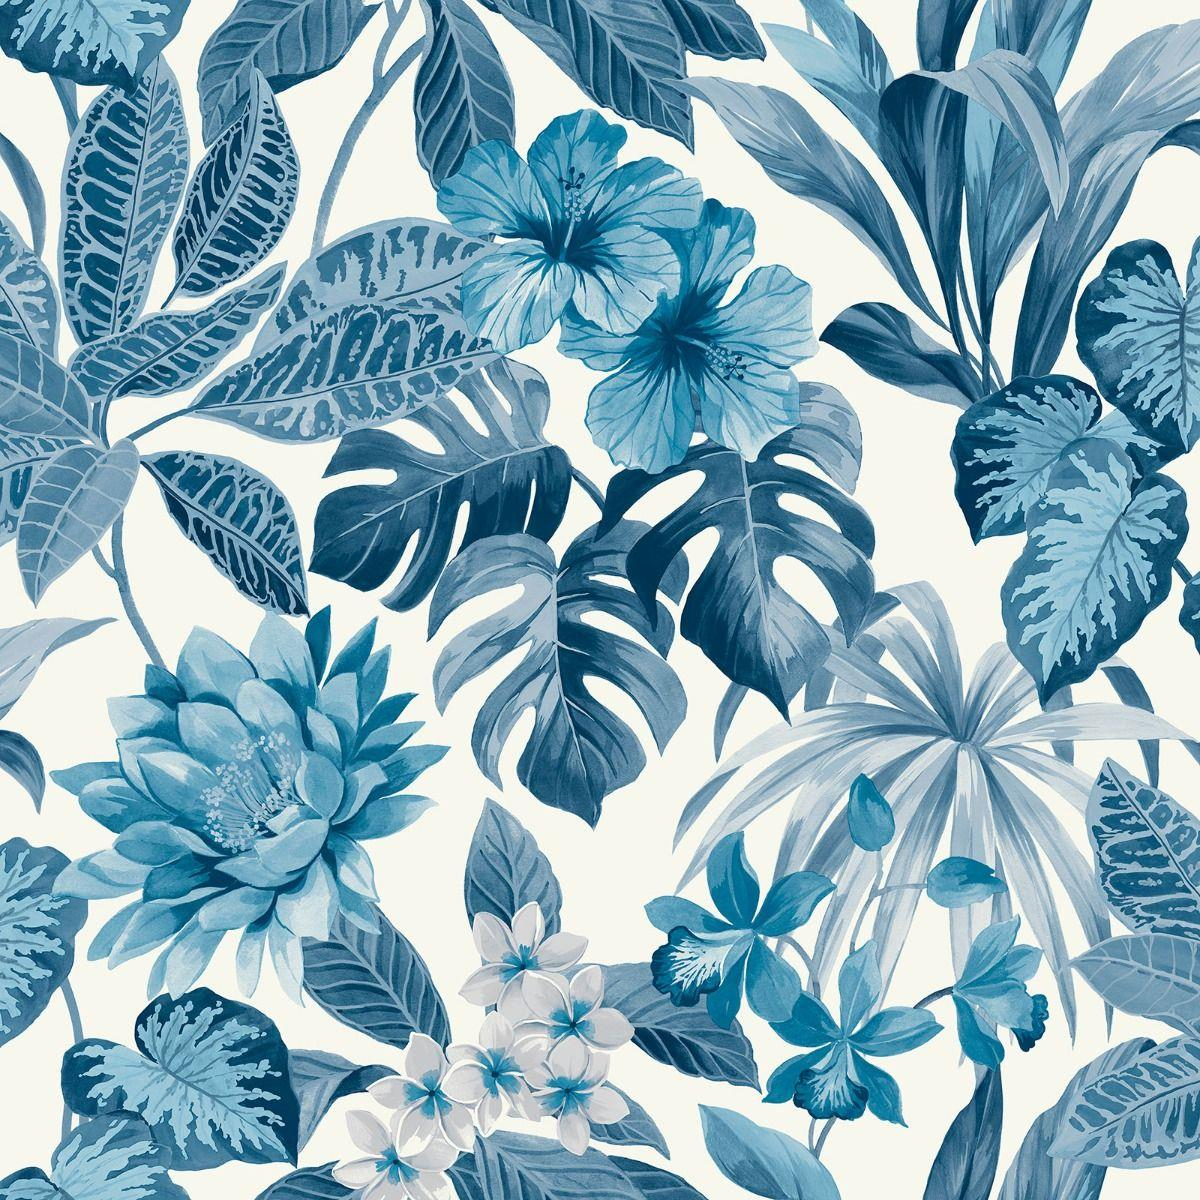 Tropica Rainforest Palm Leaf Floral Wallpaper Flower Blue White